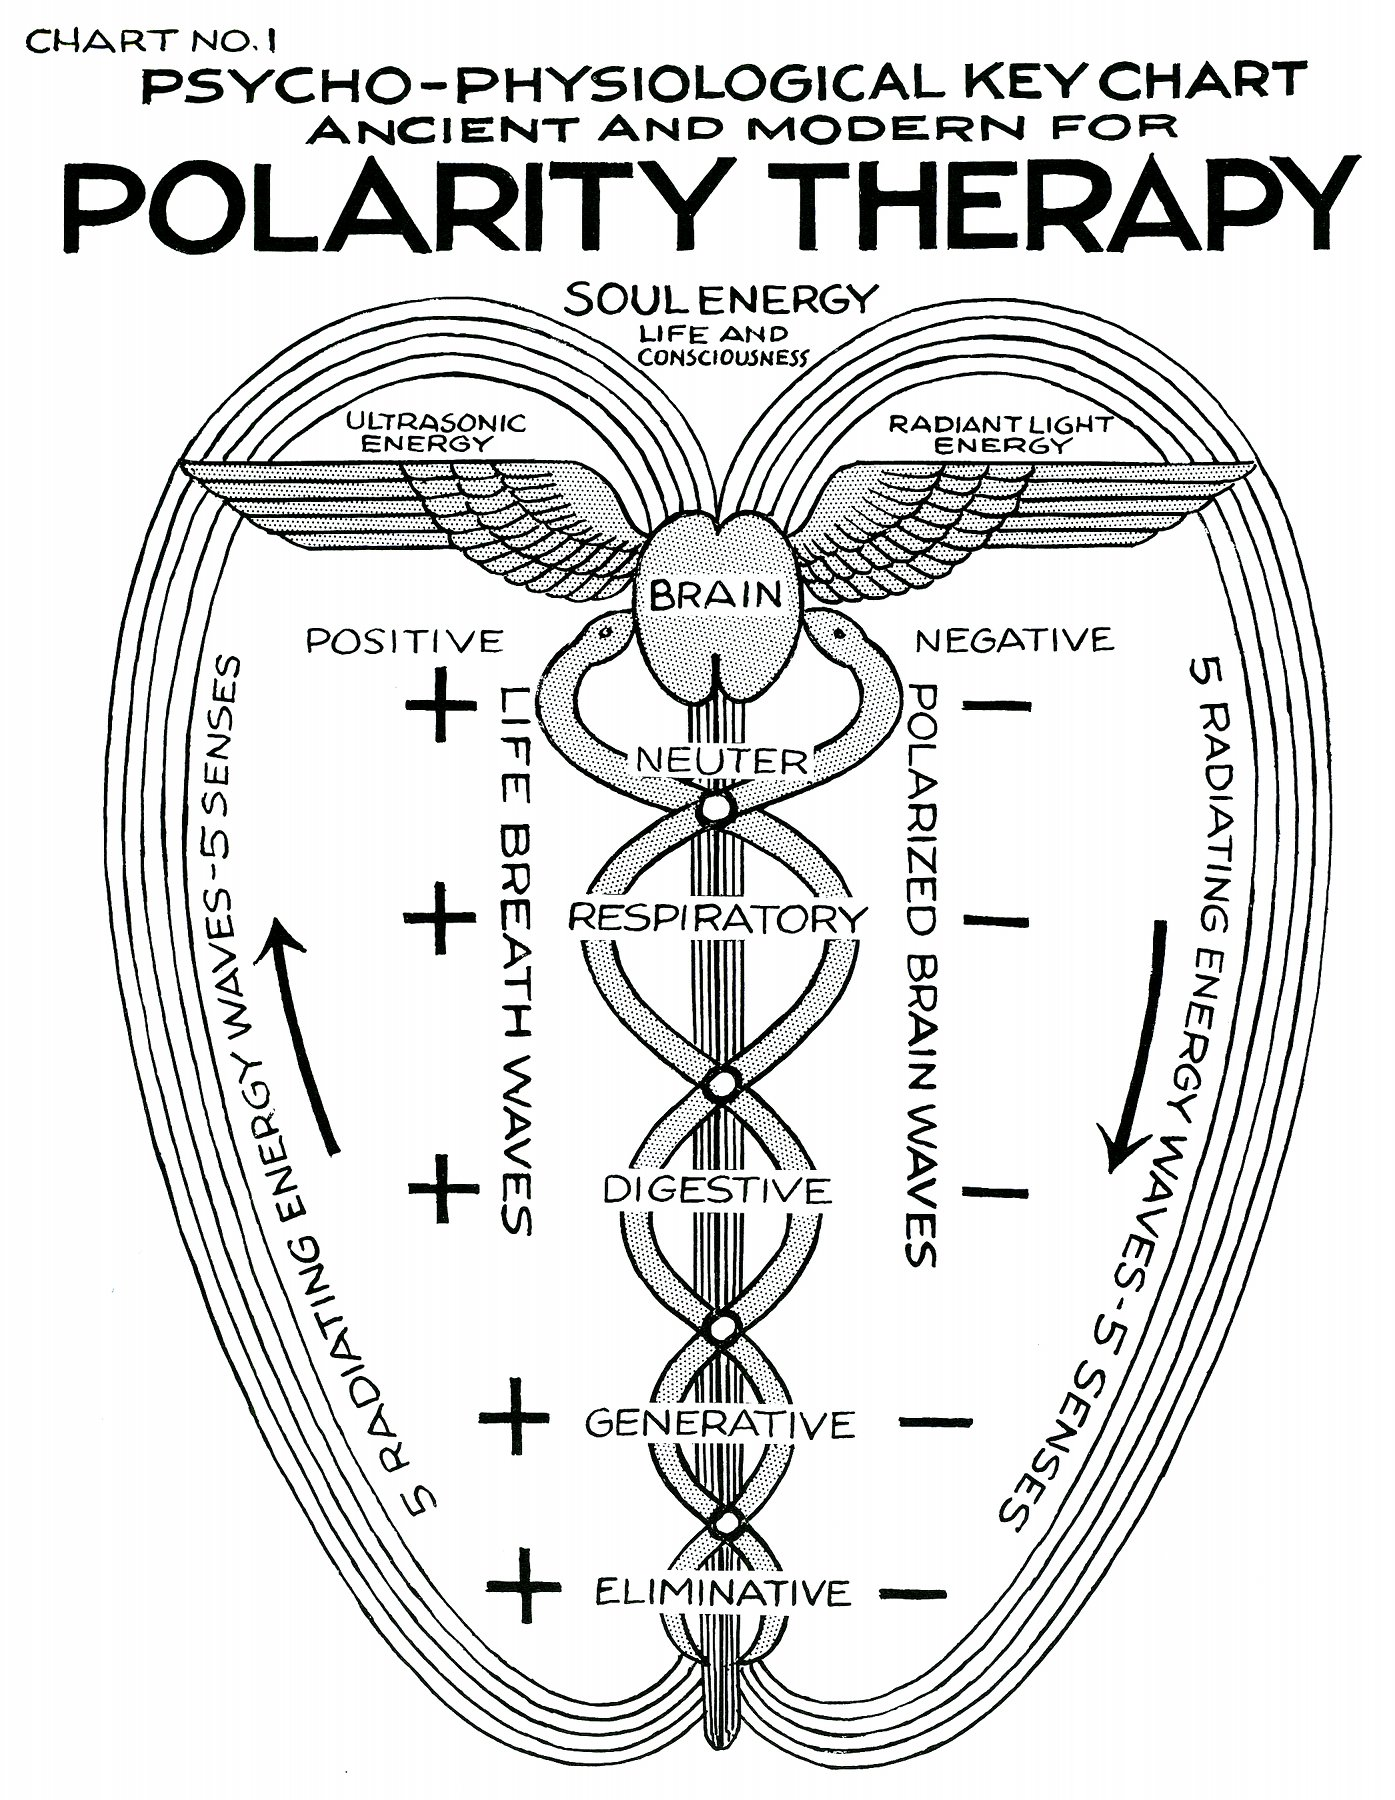 polarity therapy volume 1 book 3 chart 01 Illustration of Polarity